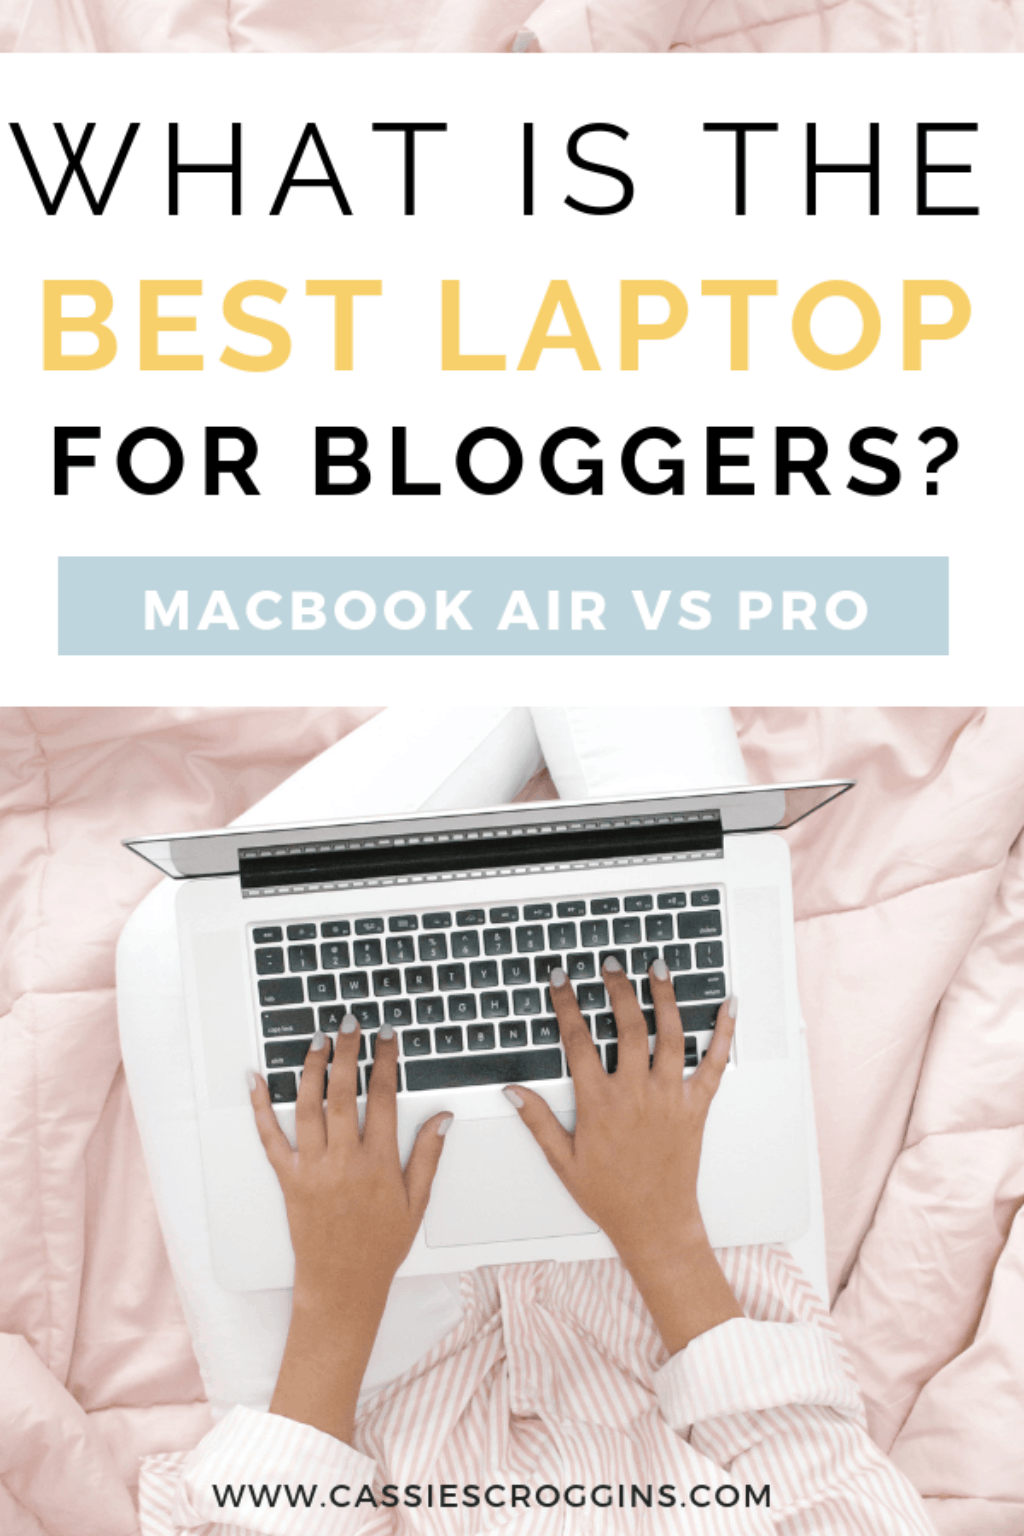 macbook air vs pro